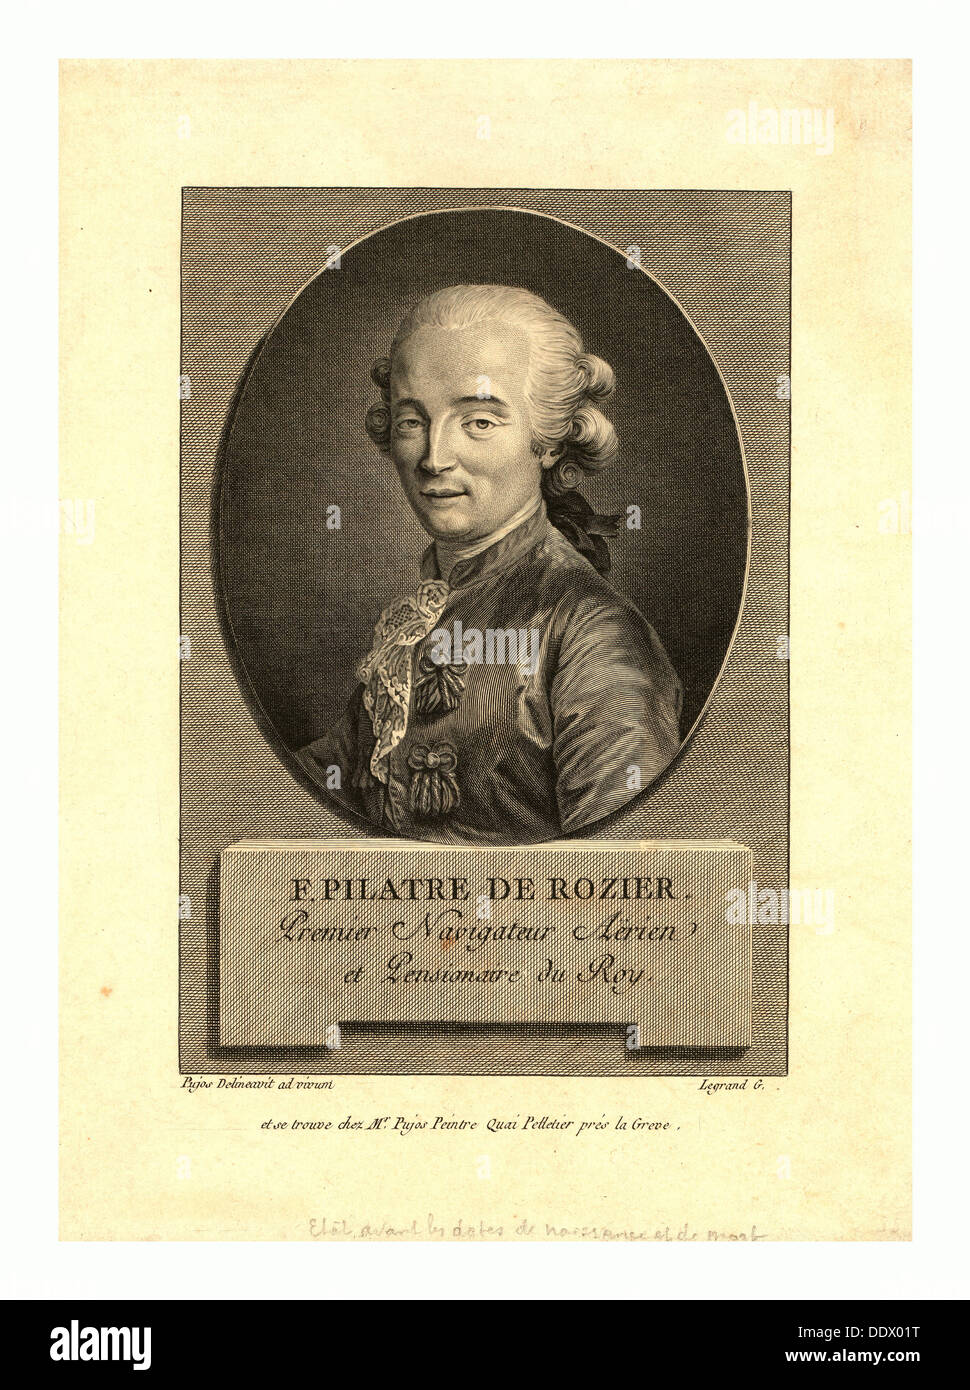 Oval head-and-shoulders portrait of French balloonist Jean-François Pilâtre de Rozier, who took the first balloon flight in 1783 - Stock Image